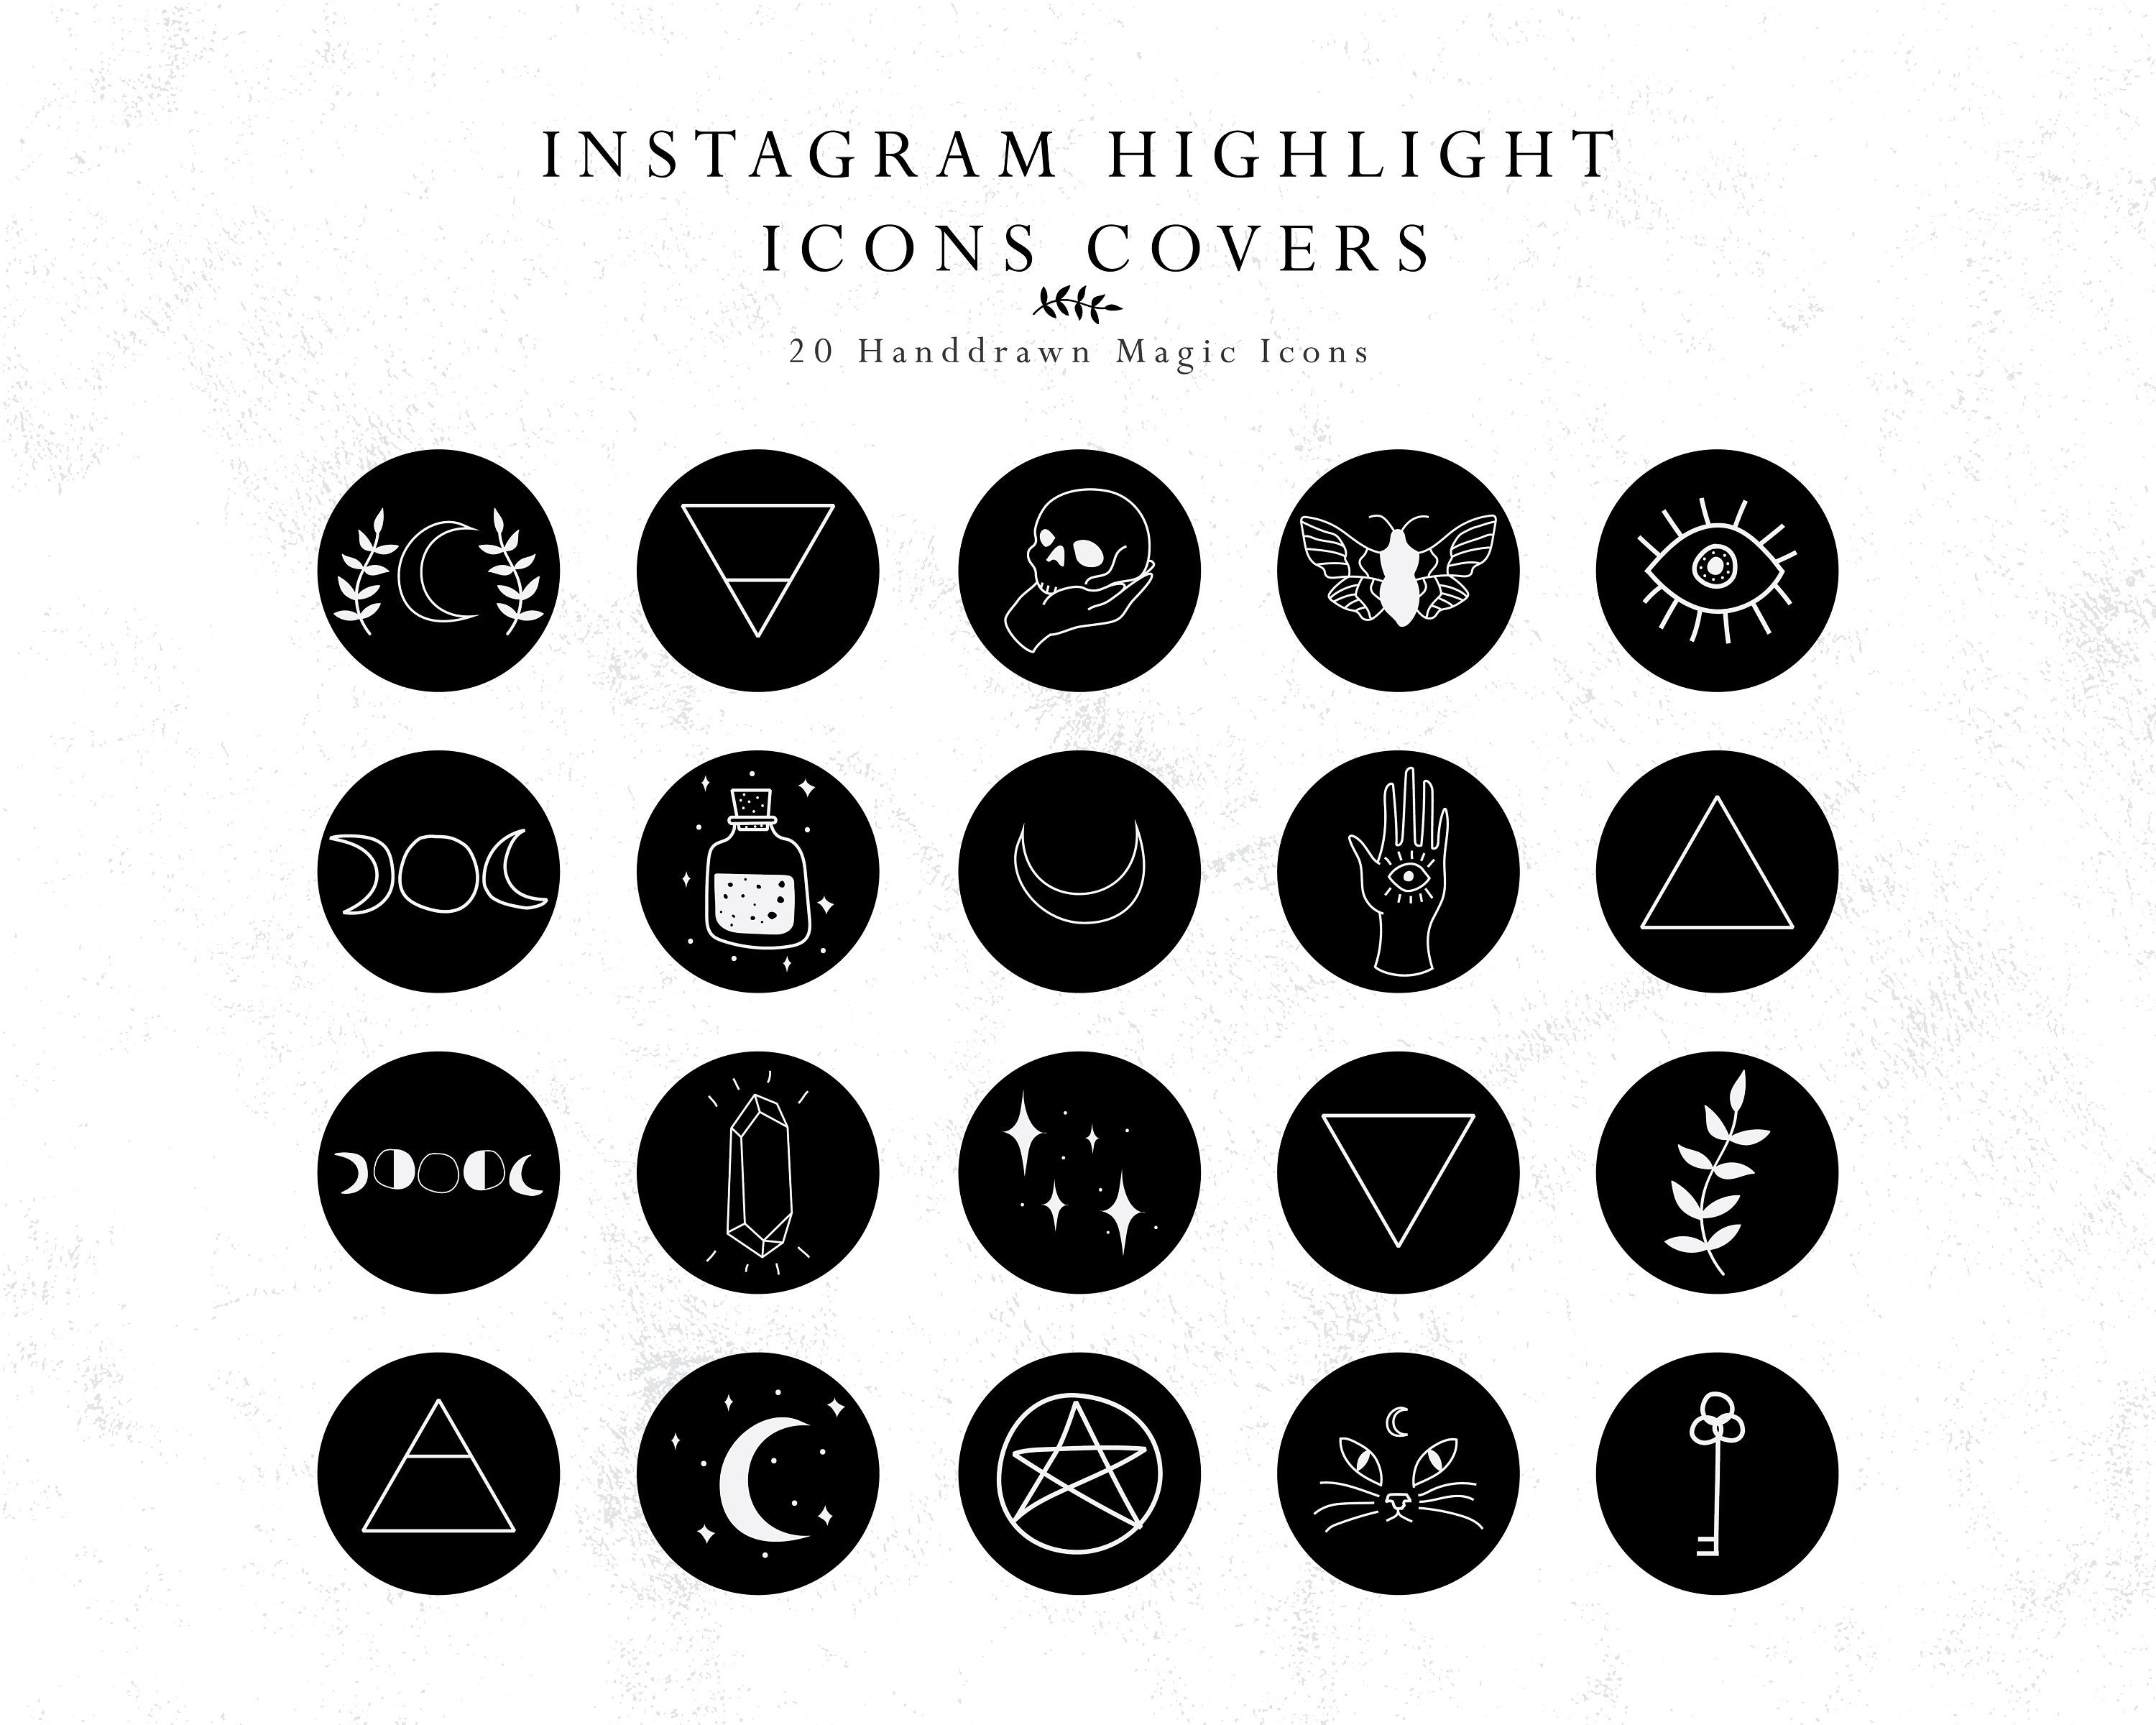 Instagram Story Highlights Cover Icons Magic Handdrawn Icons Etsy Instagram Story Story Highlights Instagram Highlight Icons